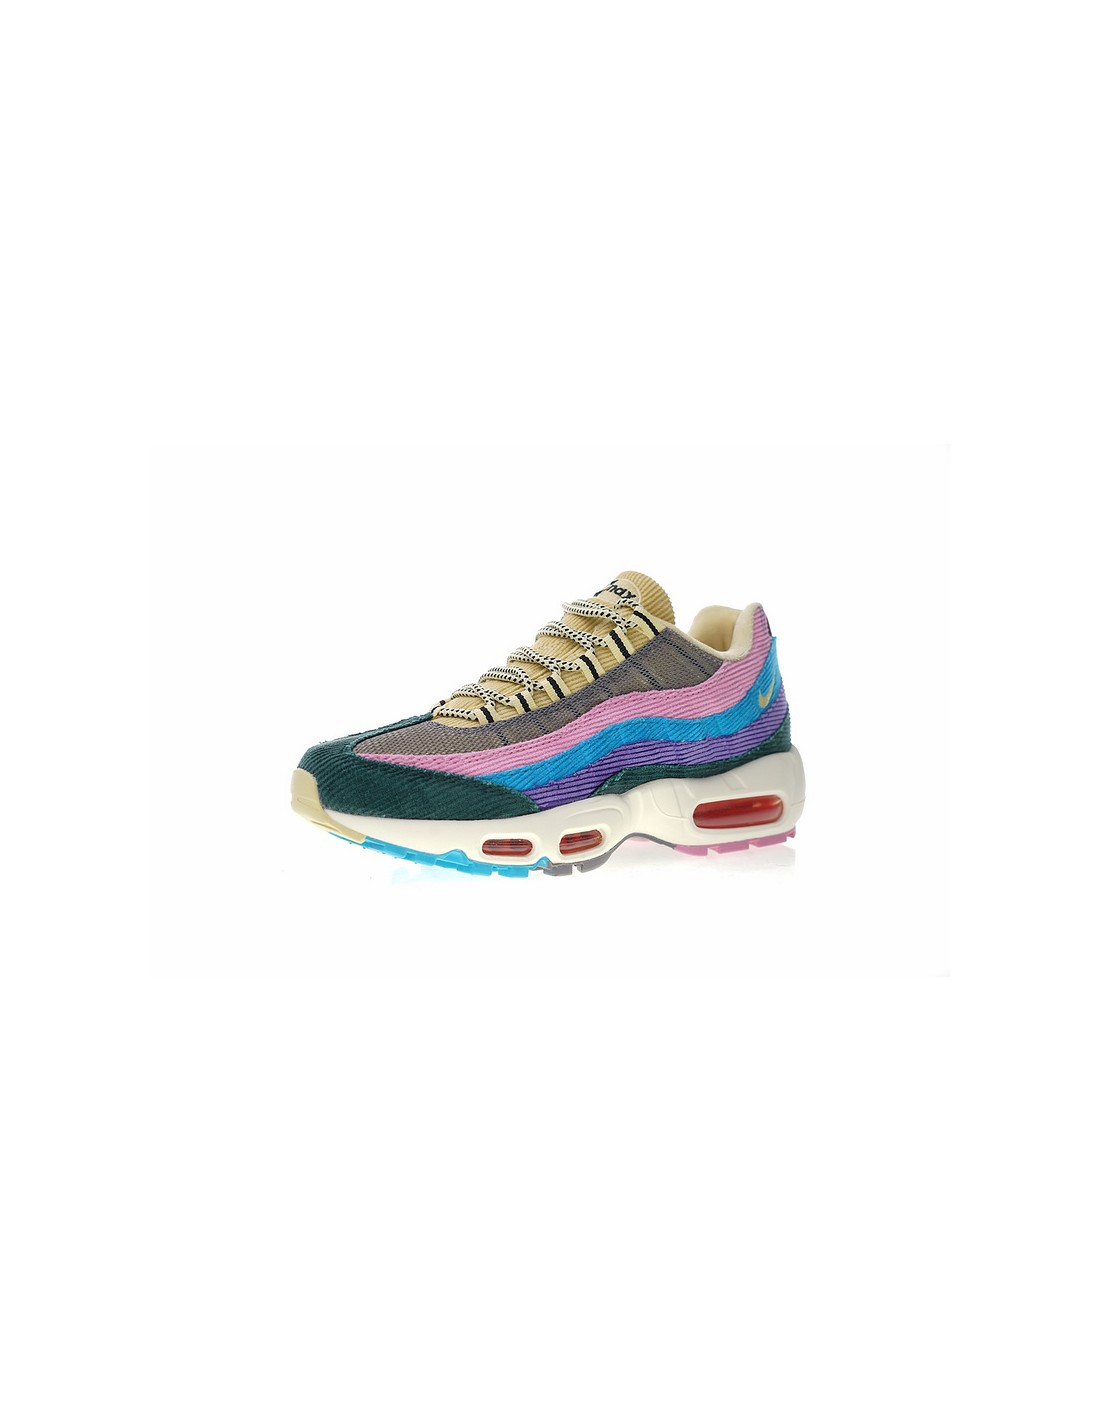 Nike Air Max 95 OG x Sean Wotherspoon